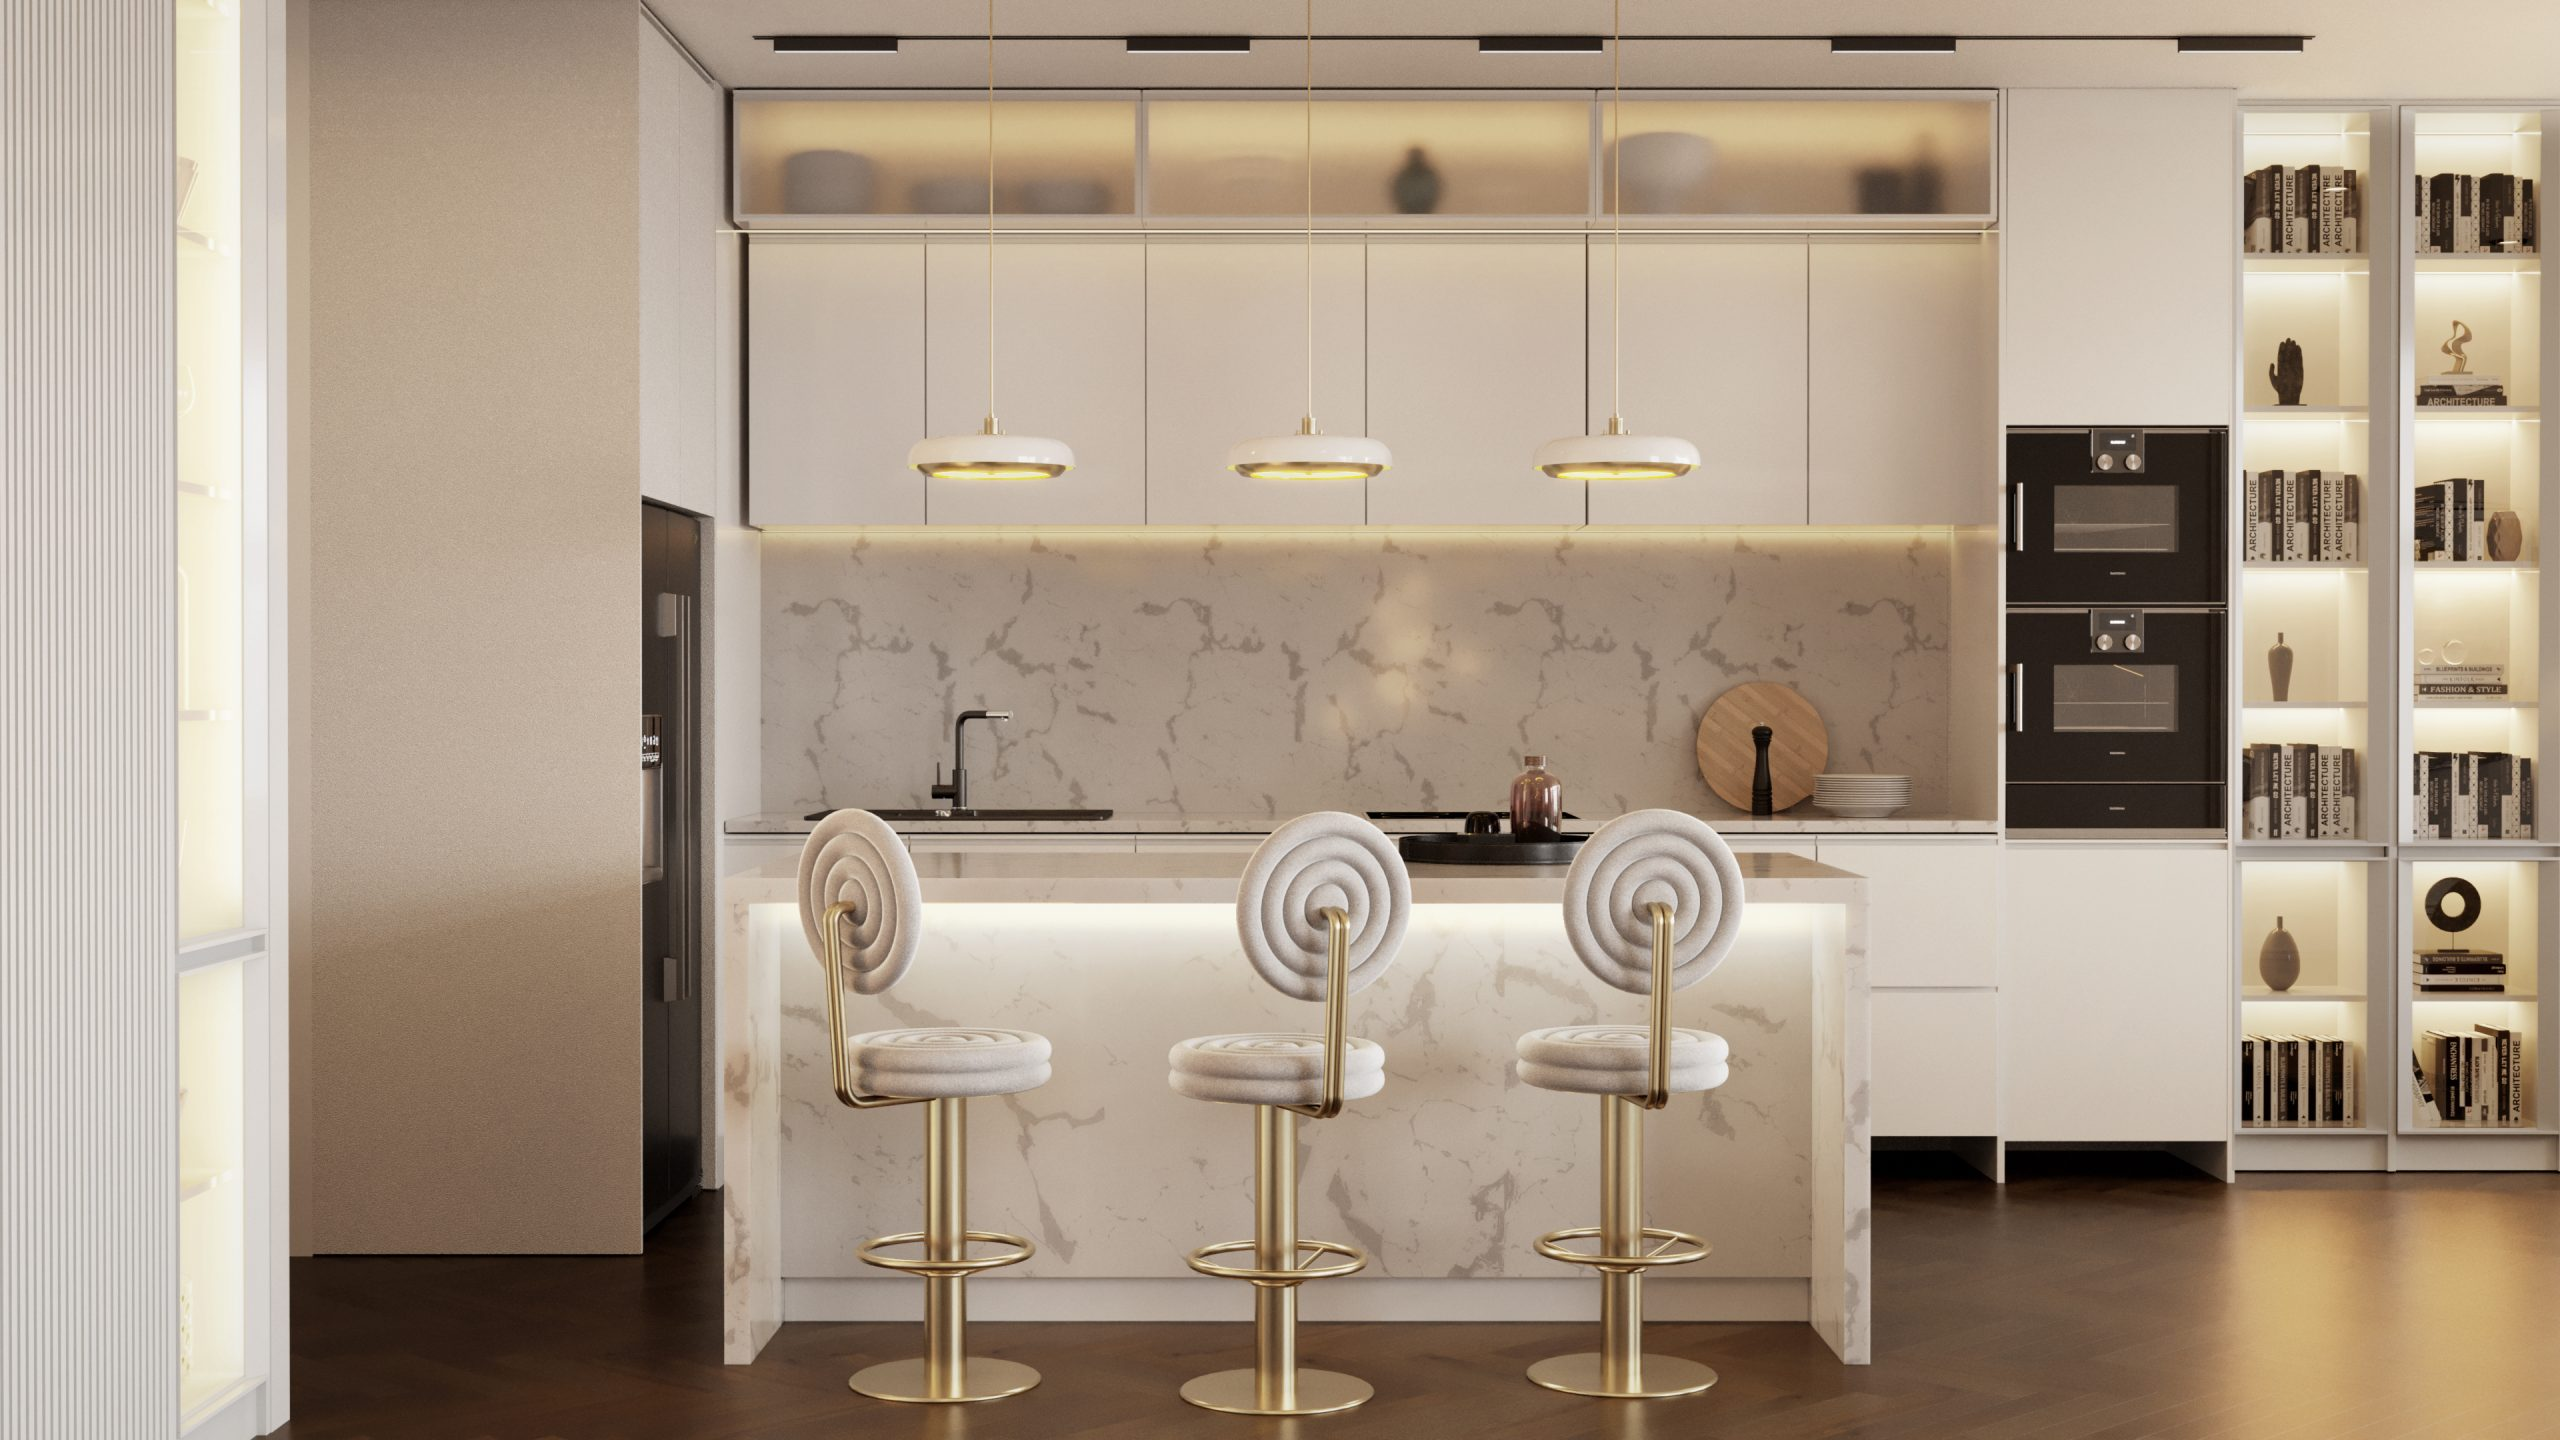 BURLESQUE KITCHEN DESIGN WITH NEW BAR CHAIR